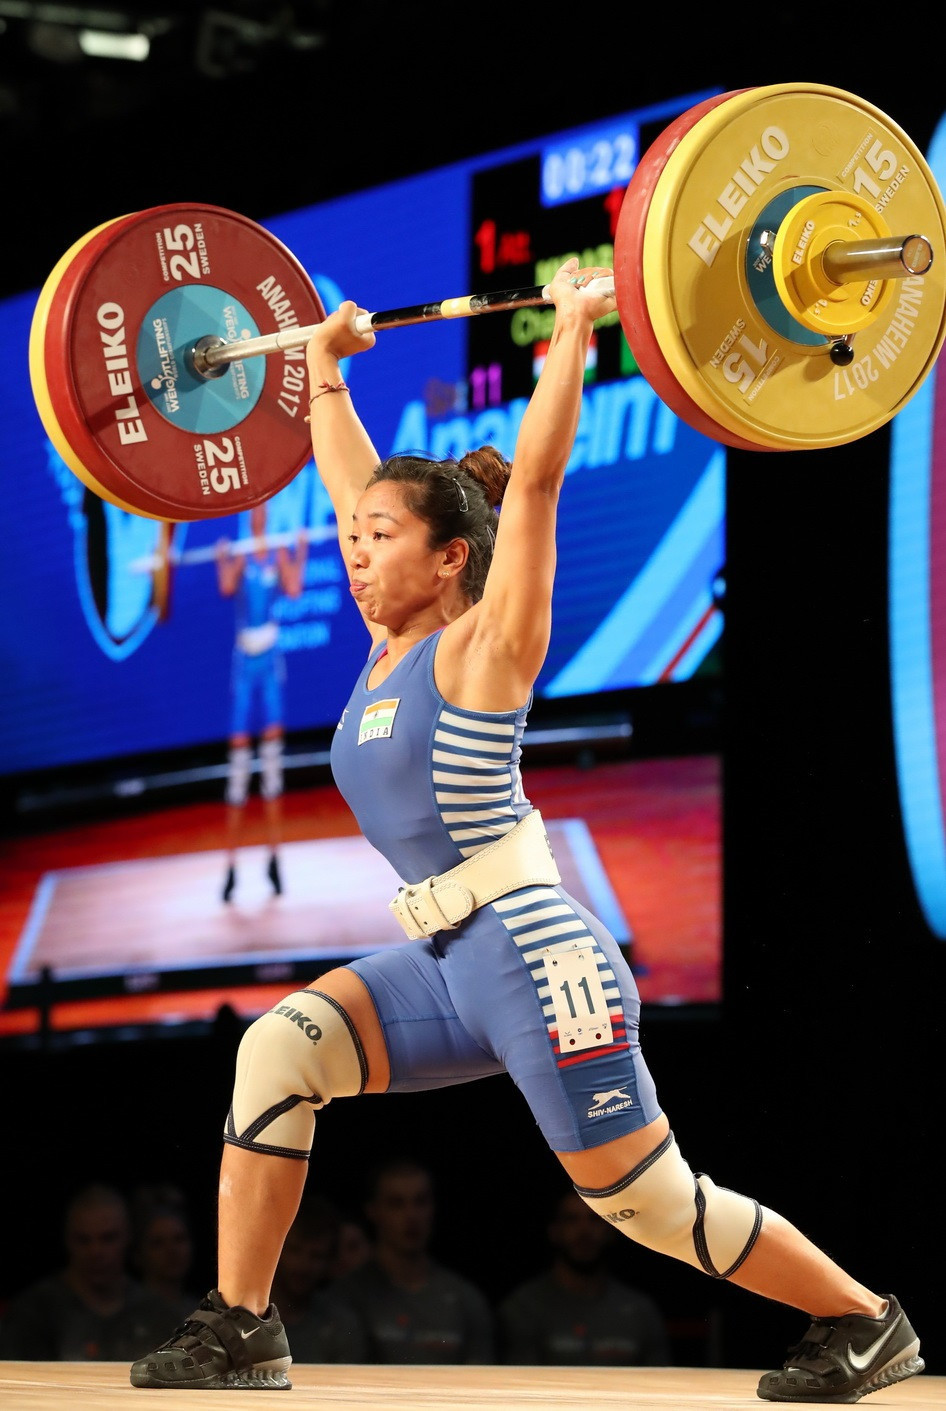 Weightlifting is striving to retain its Olympic status ©IWF